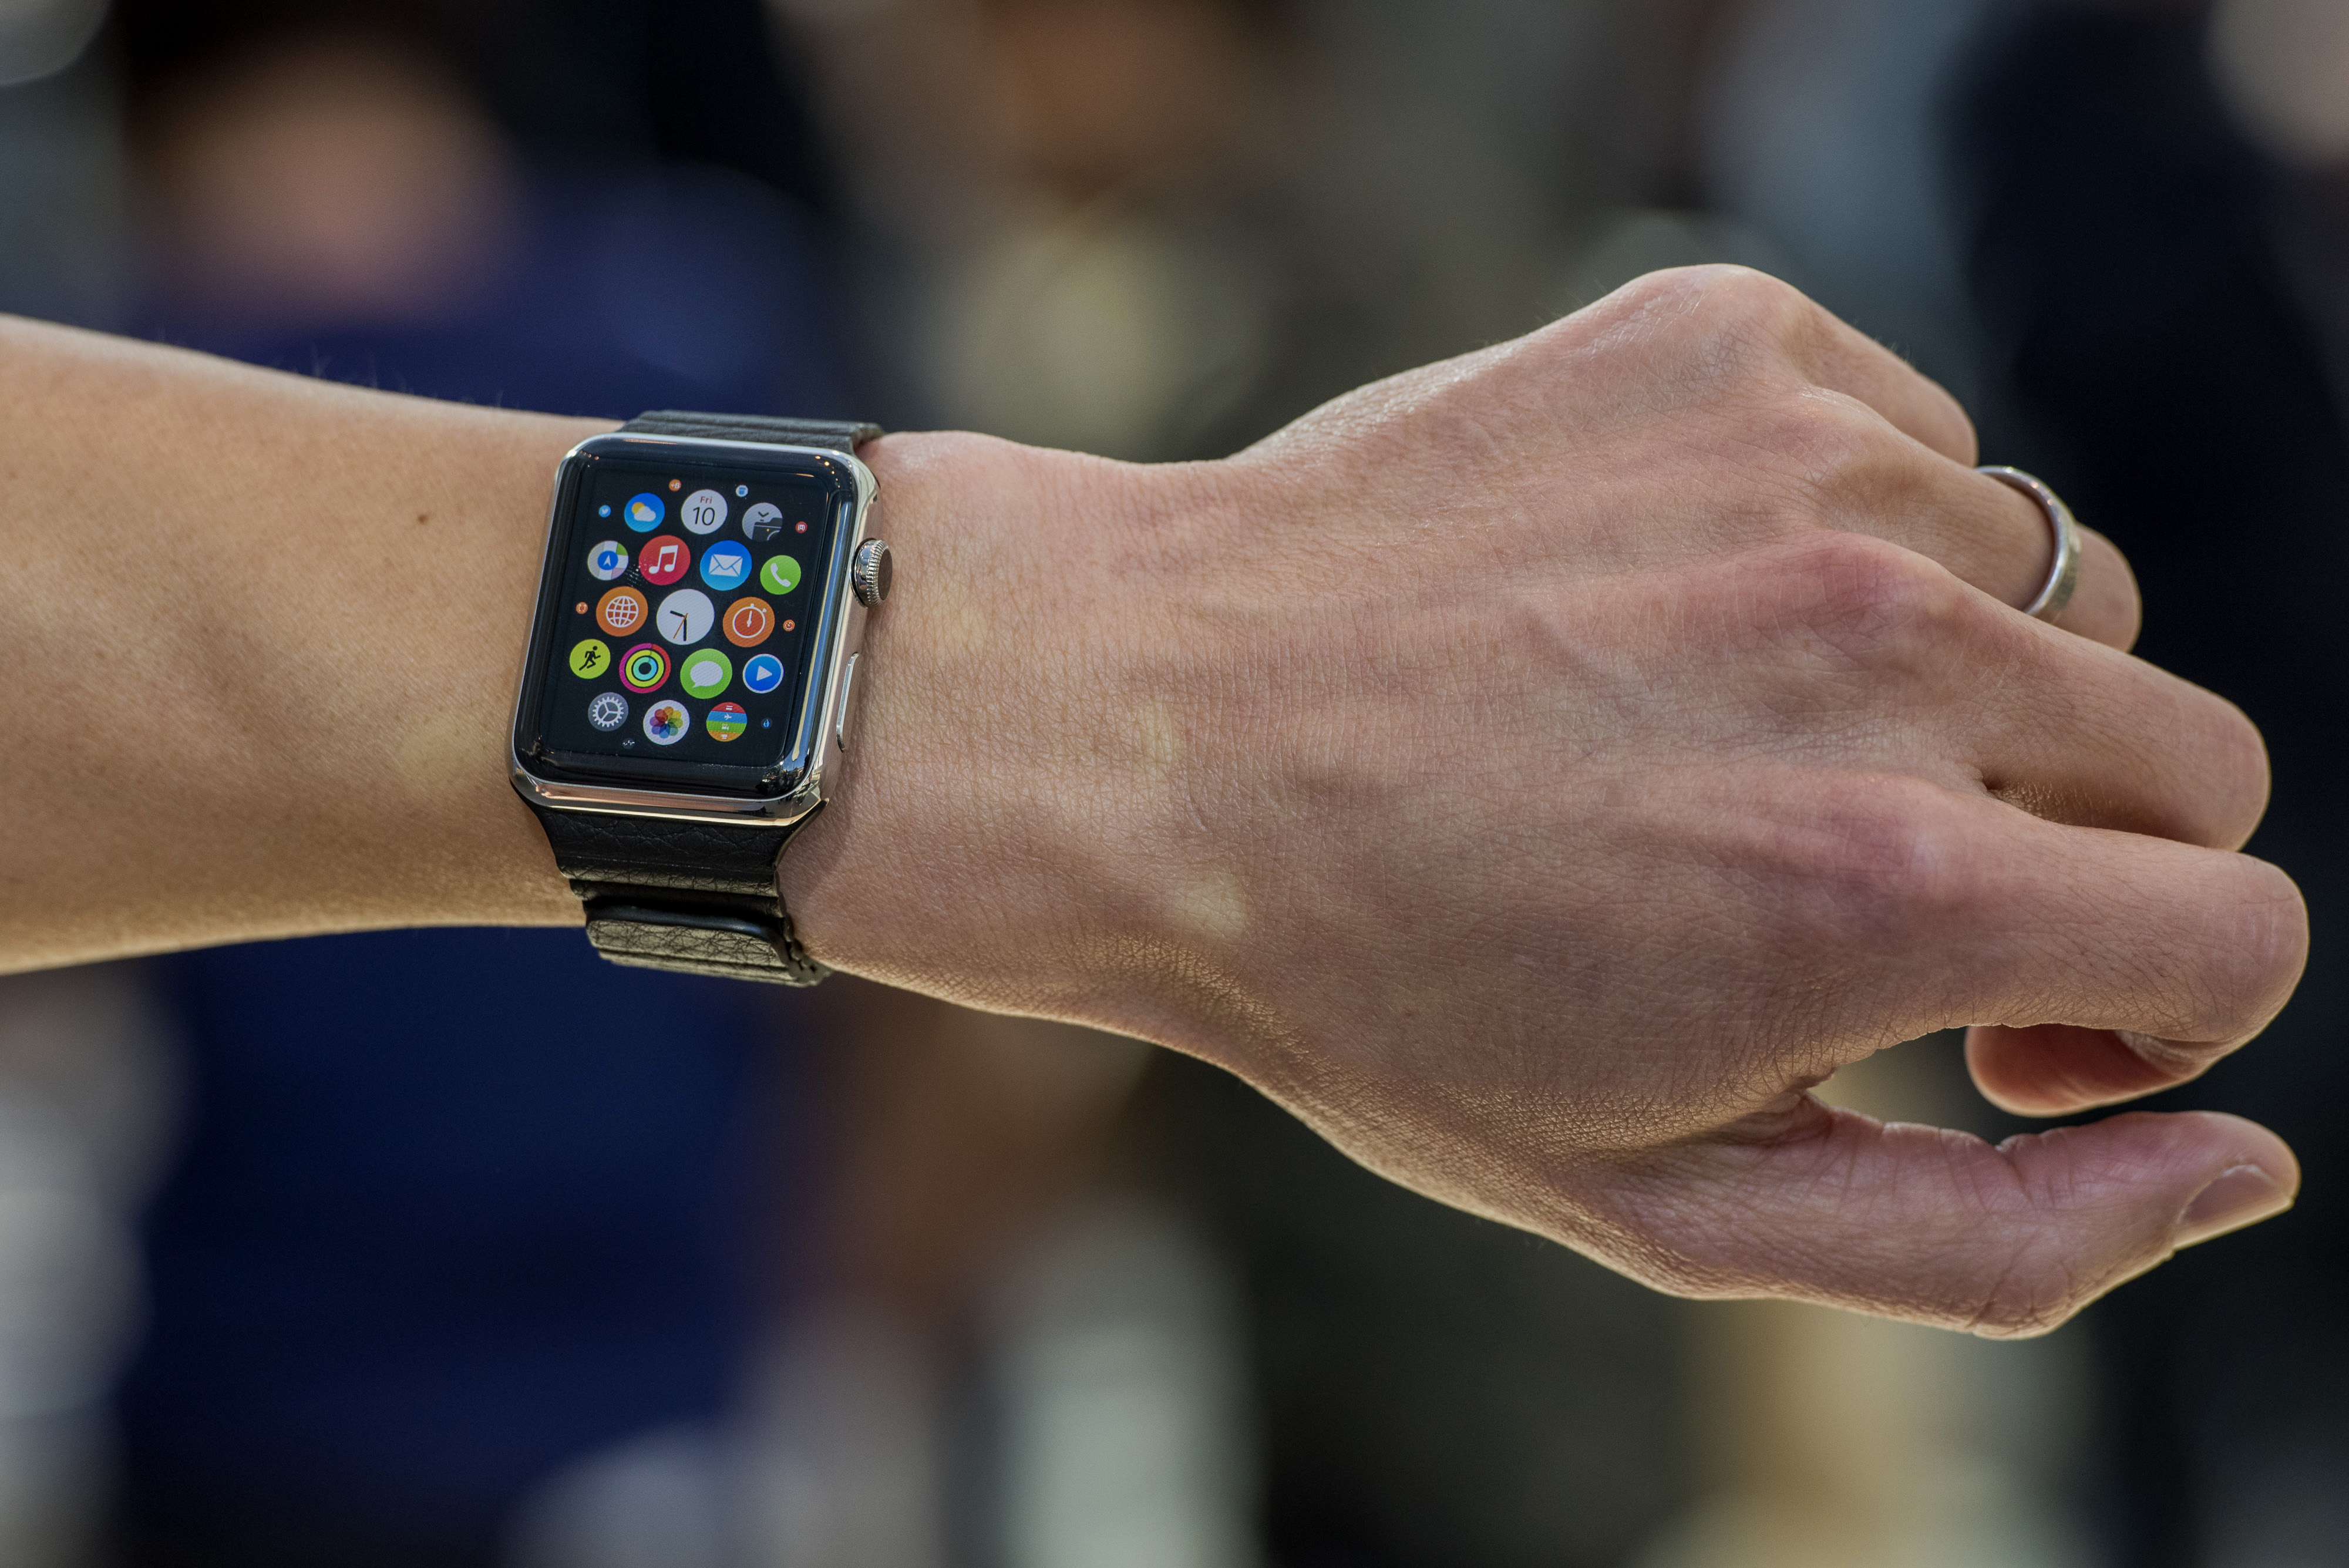 Customers look at Apple Watches on display at an Apple Inc. store in Palo Alto, California, U.S., on Friday, April 10, 2015.